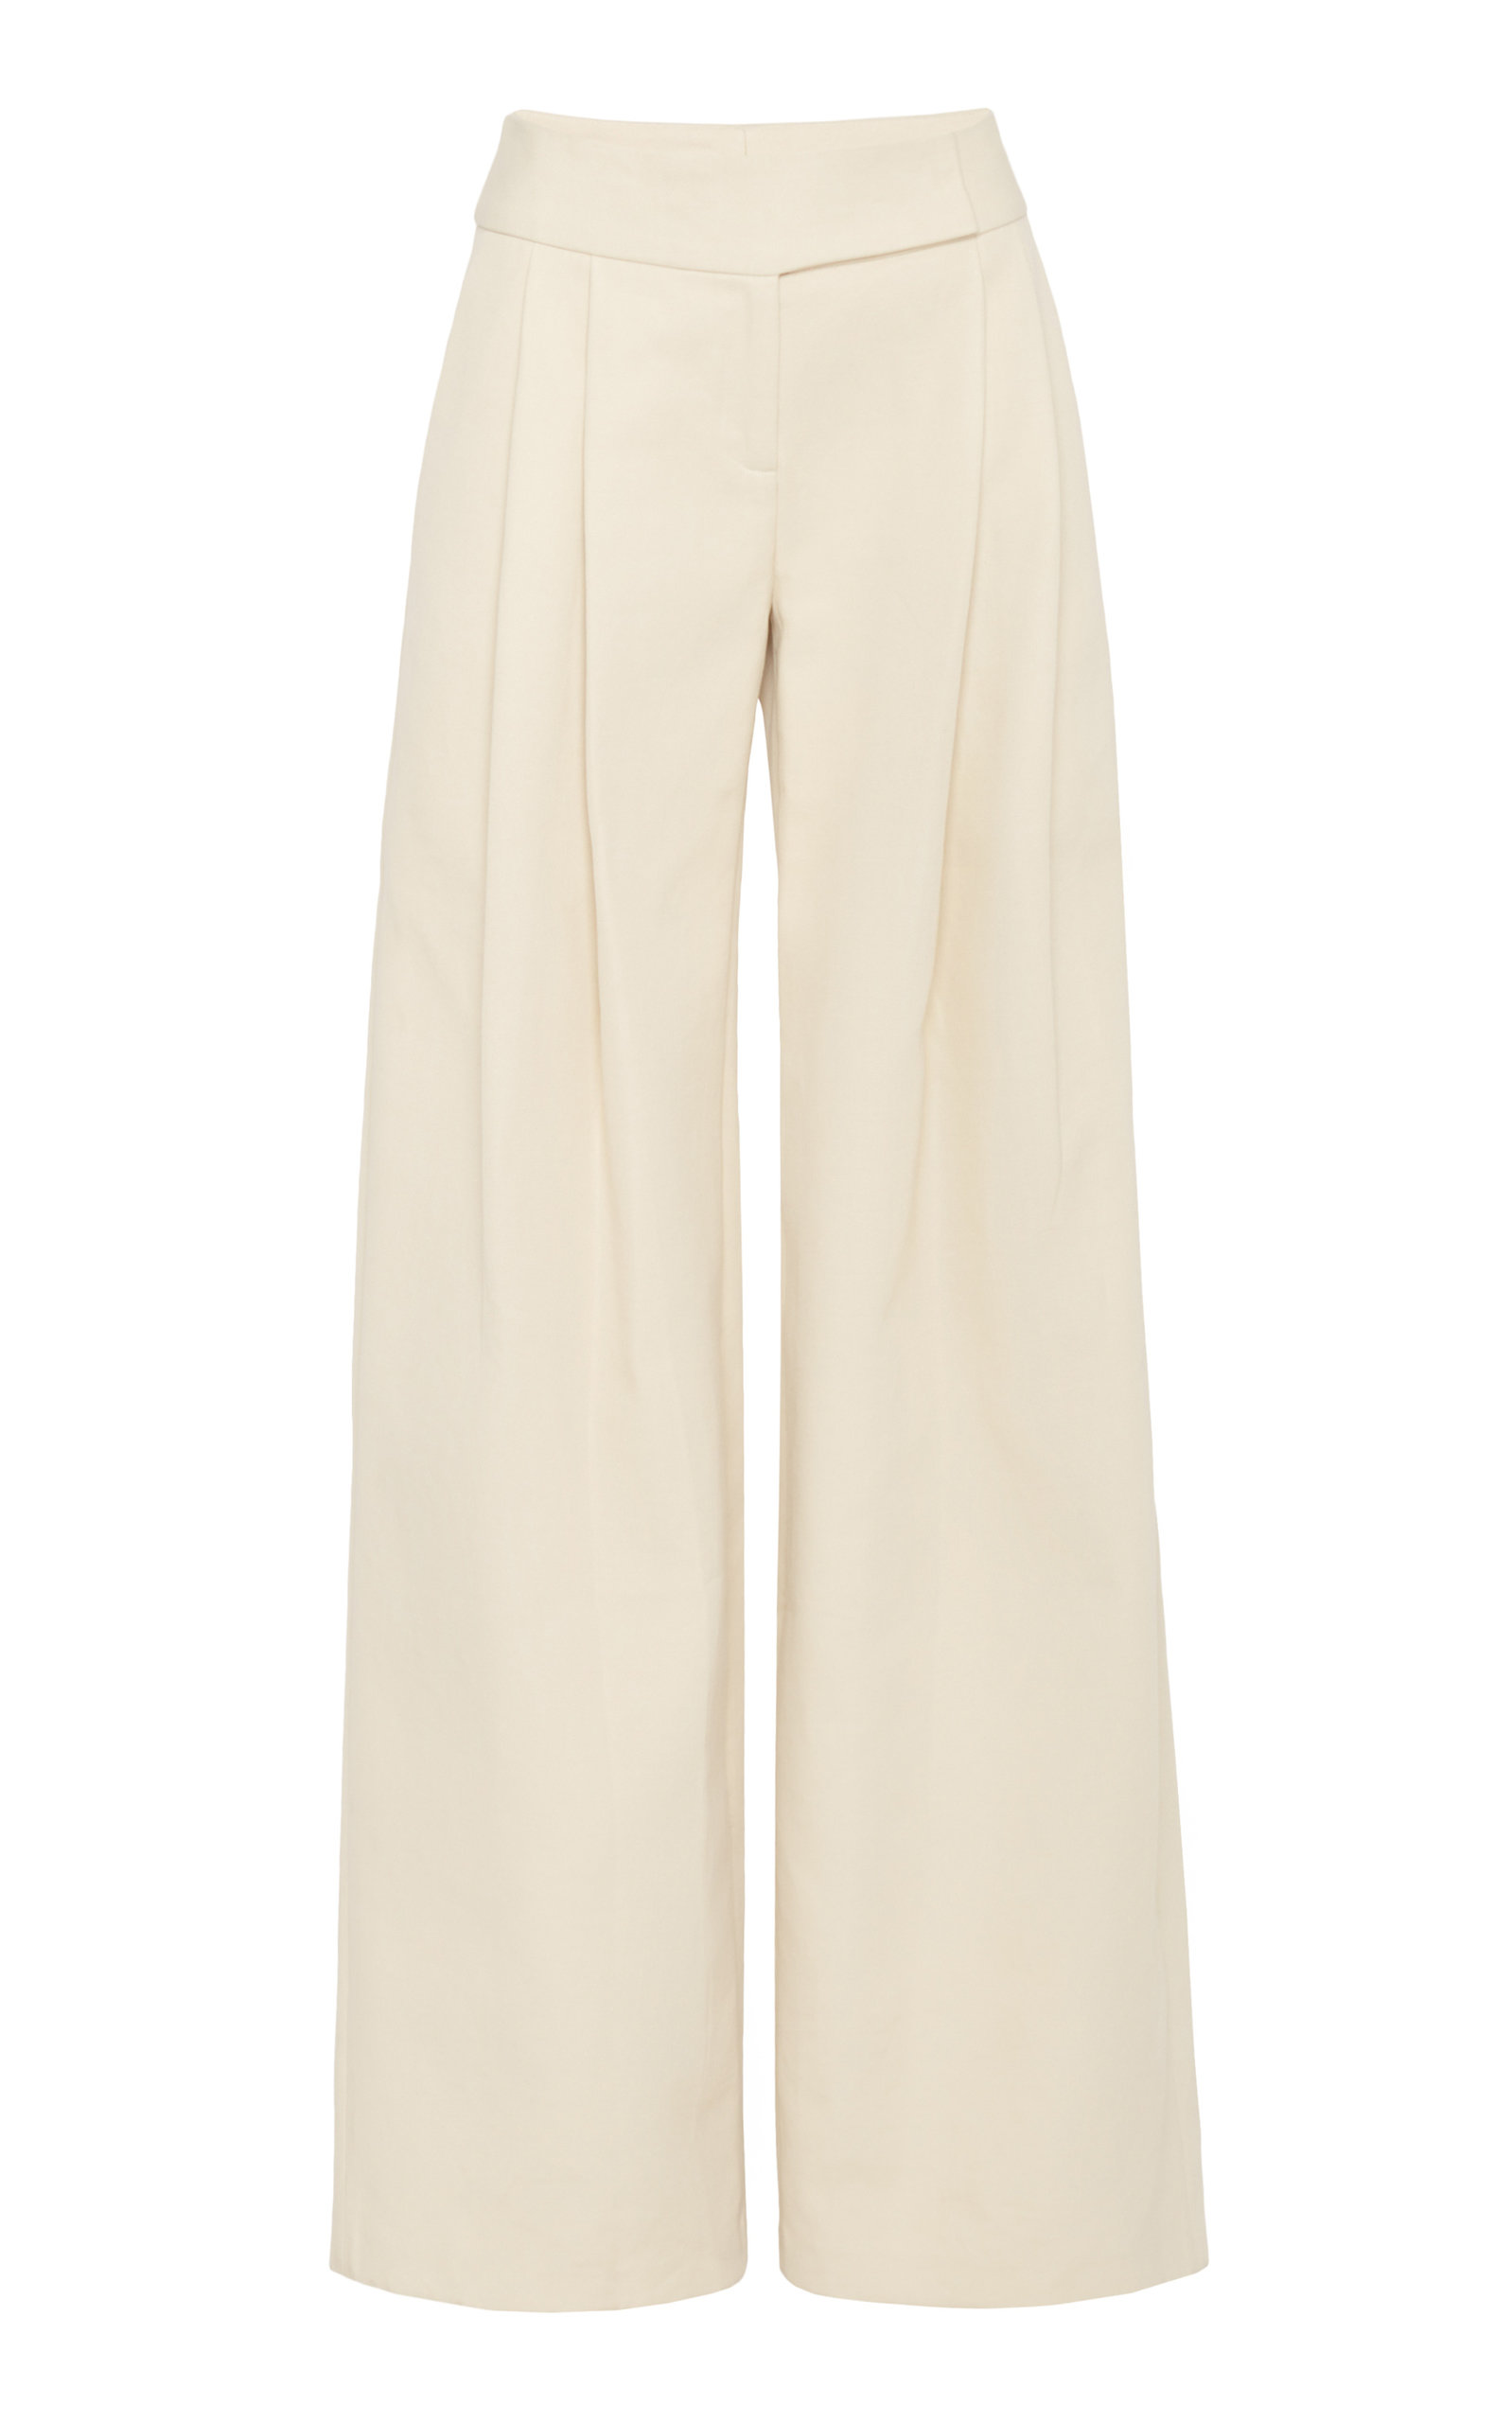 MARINA MOSCONE WIDE LEG COTTON BLEND TROUSERS